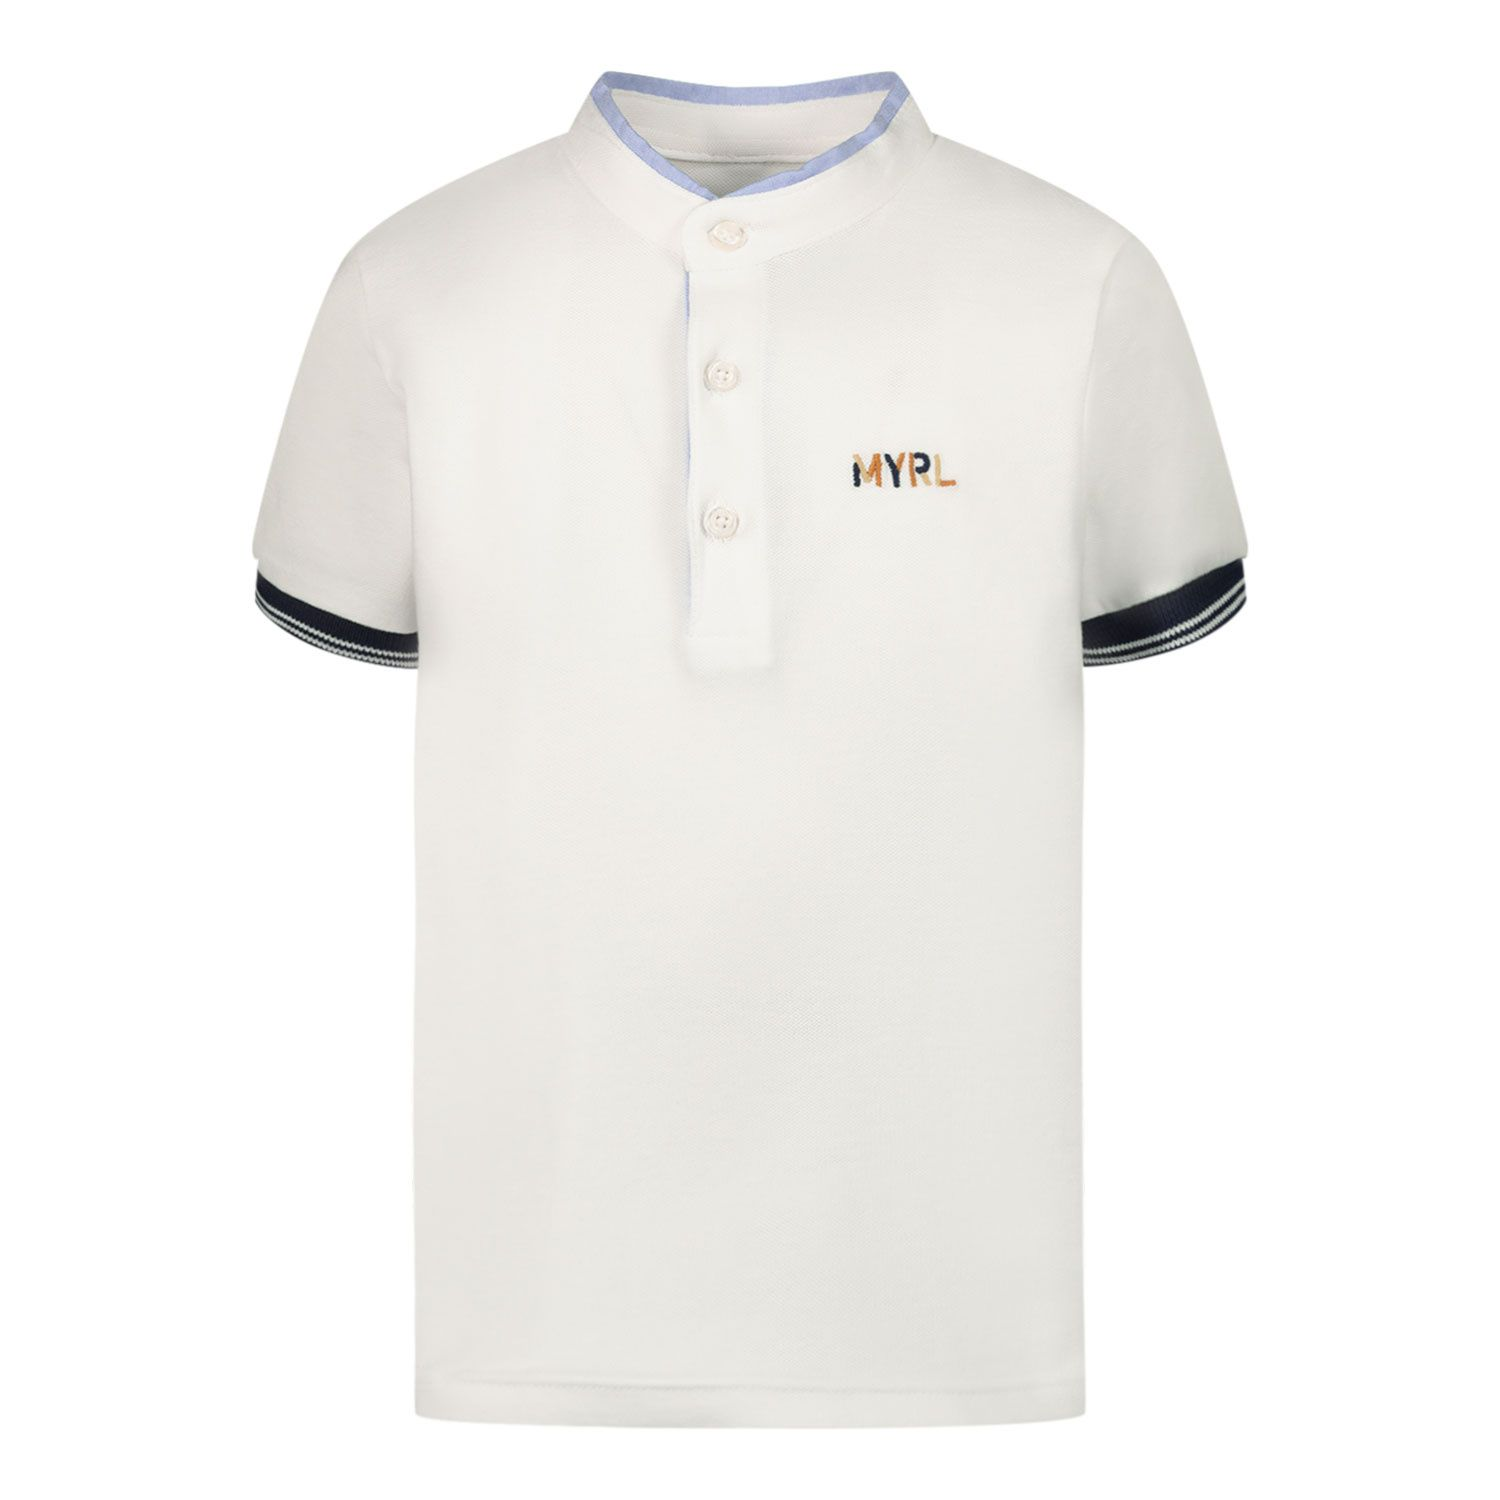 Picture of Mayoral 1102 baby poloshirt white